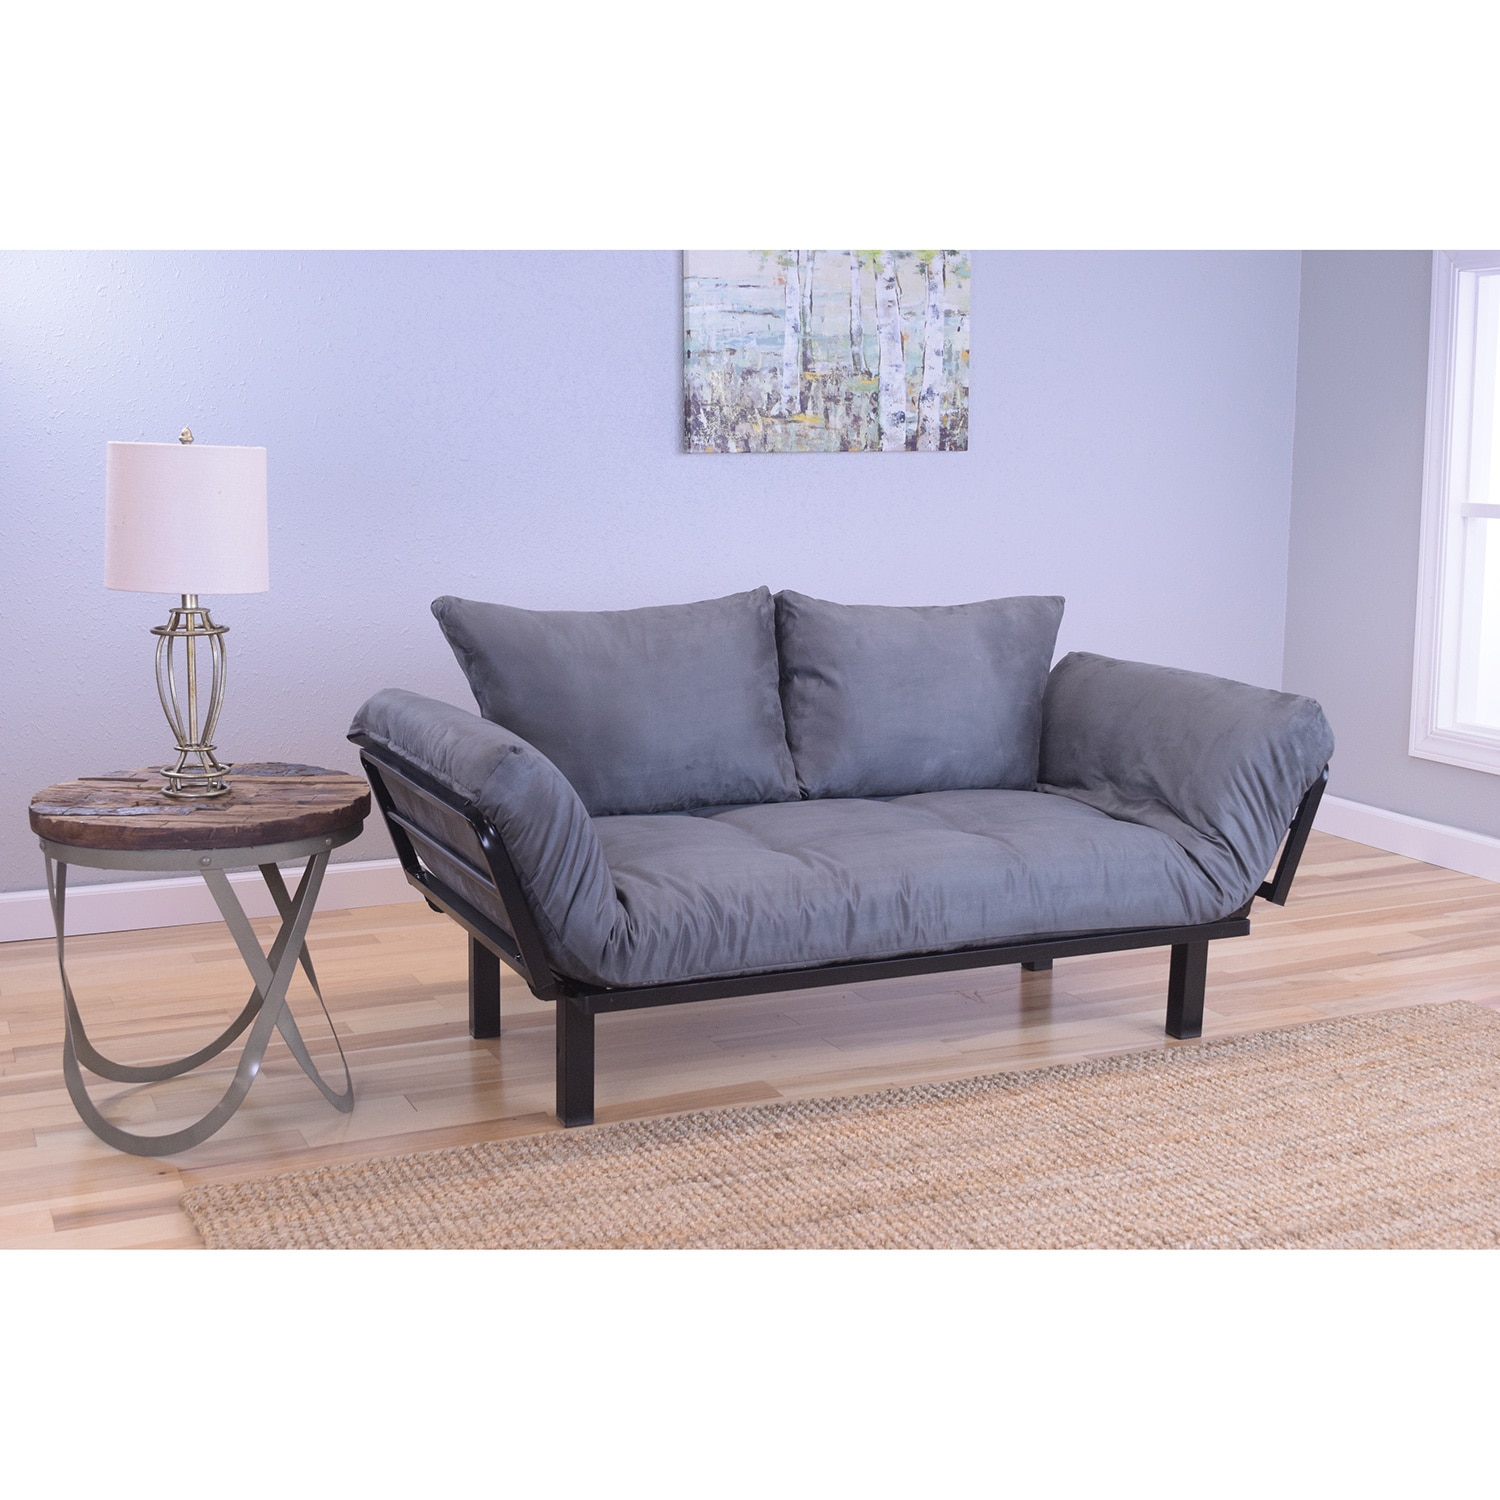 Somette Eli Spacely Daybed Lounger with Suede Grey Mattre...